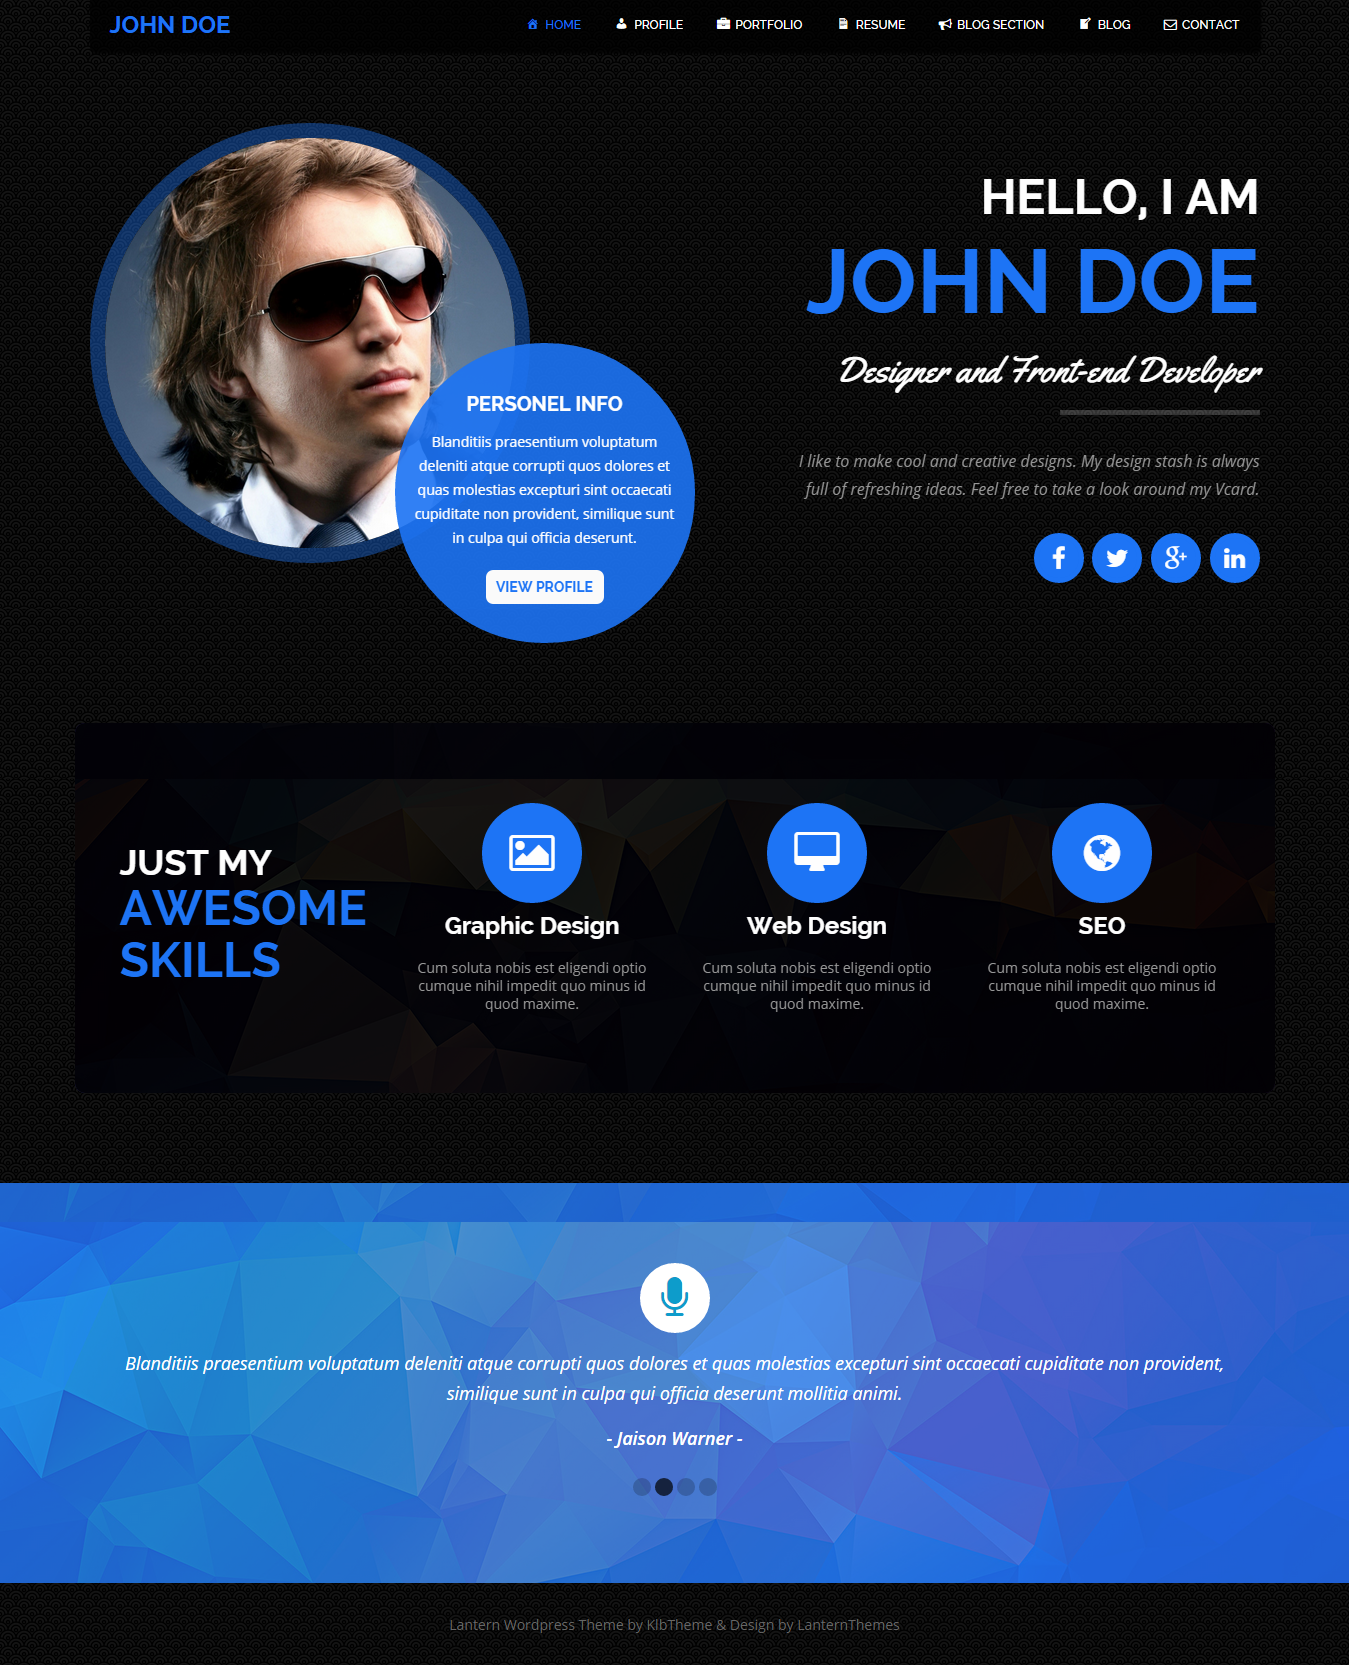 lantern personal resume and portfolio theme personal resume website template - Personal Website Resume Examples